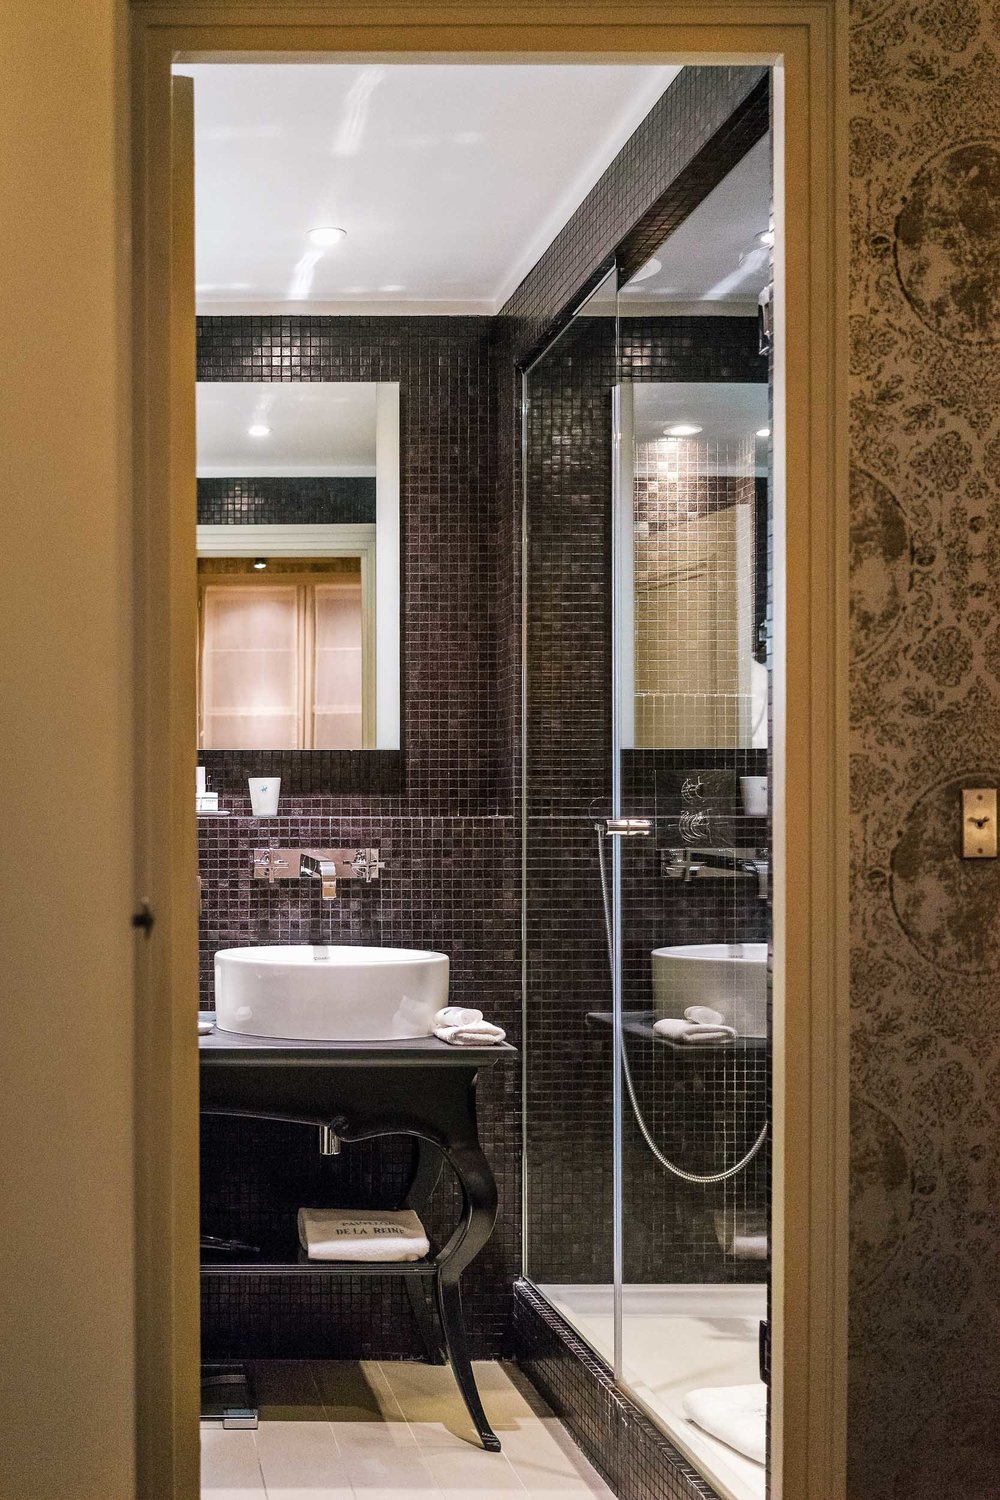 A beautiful bathroom at Pavillon de la Reine, five star hotel in Marais, Paris